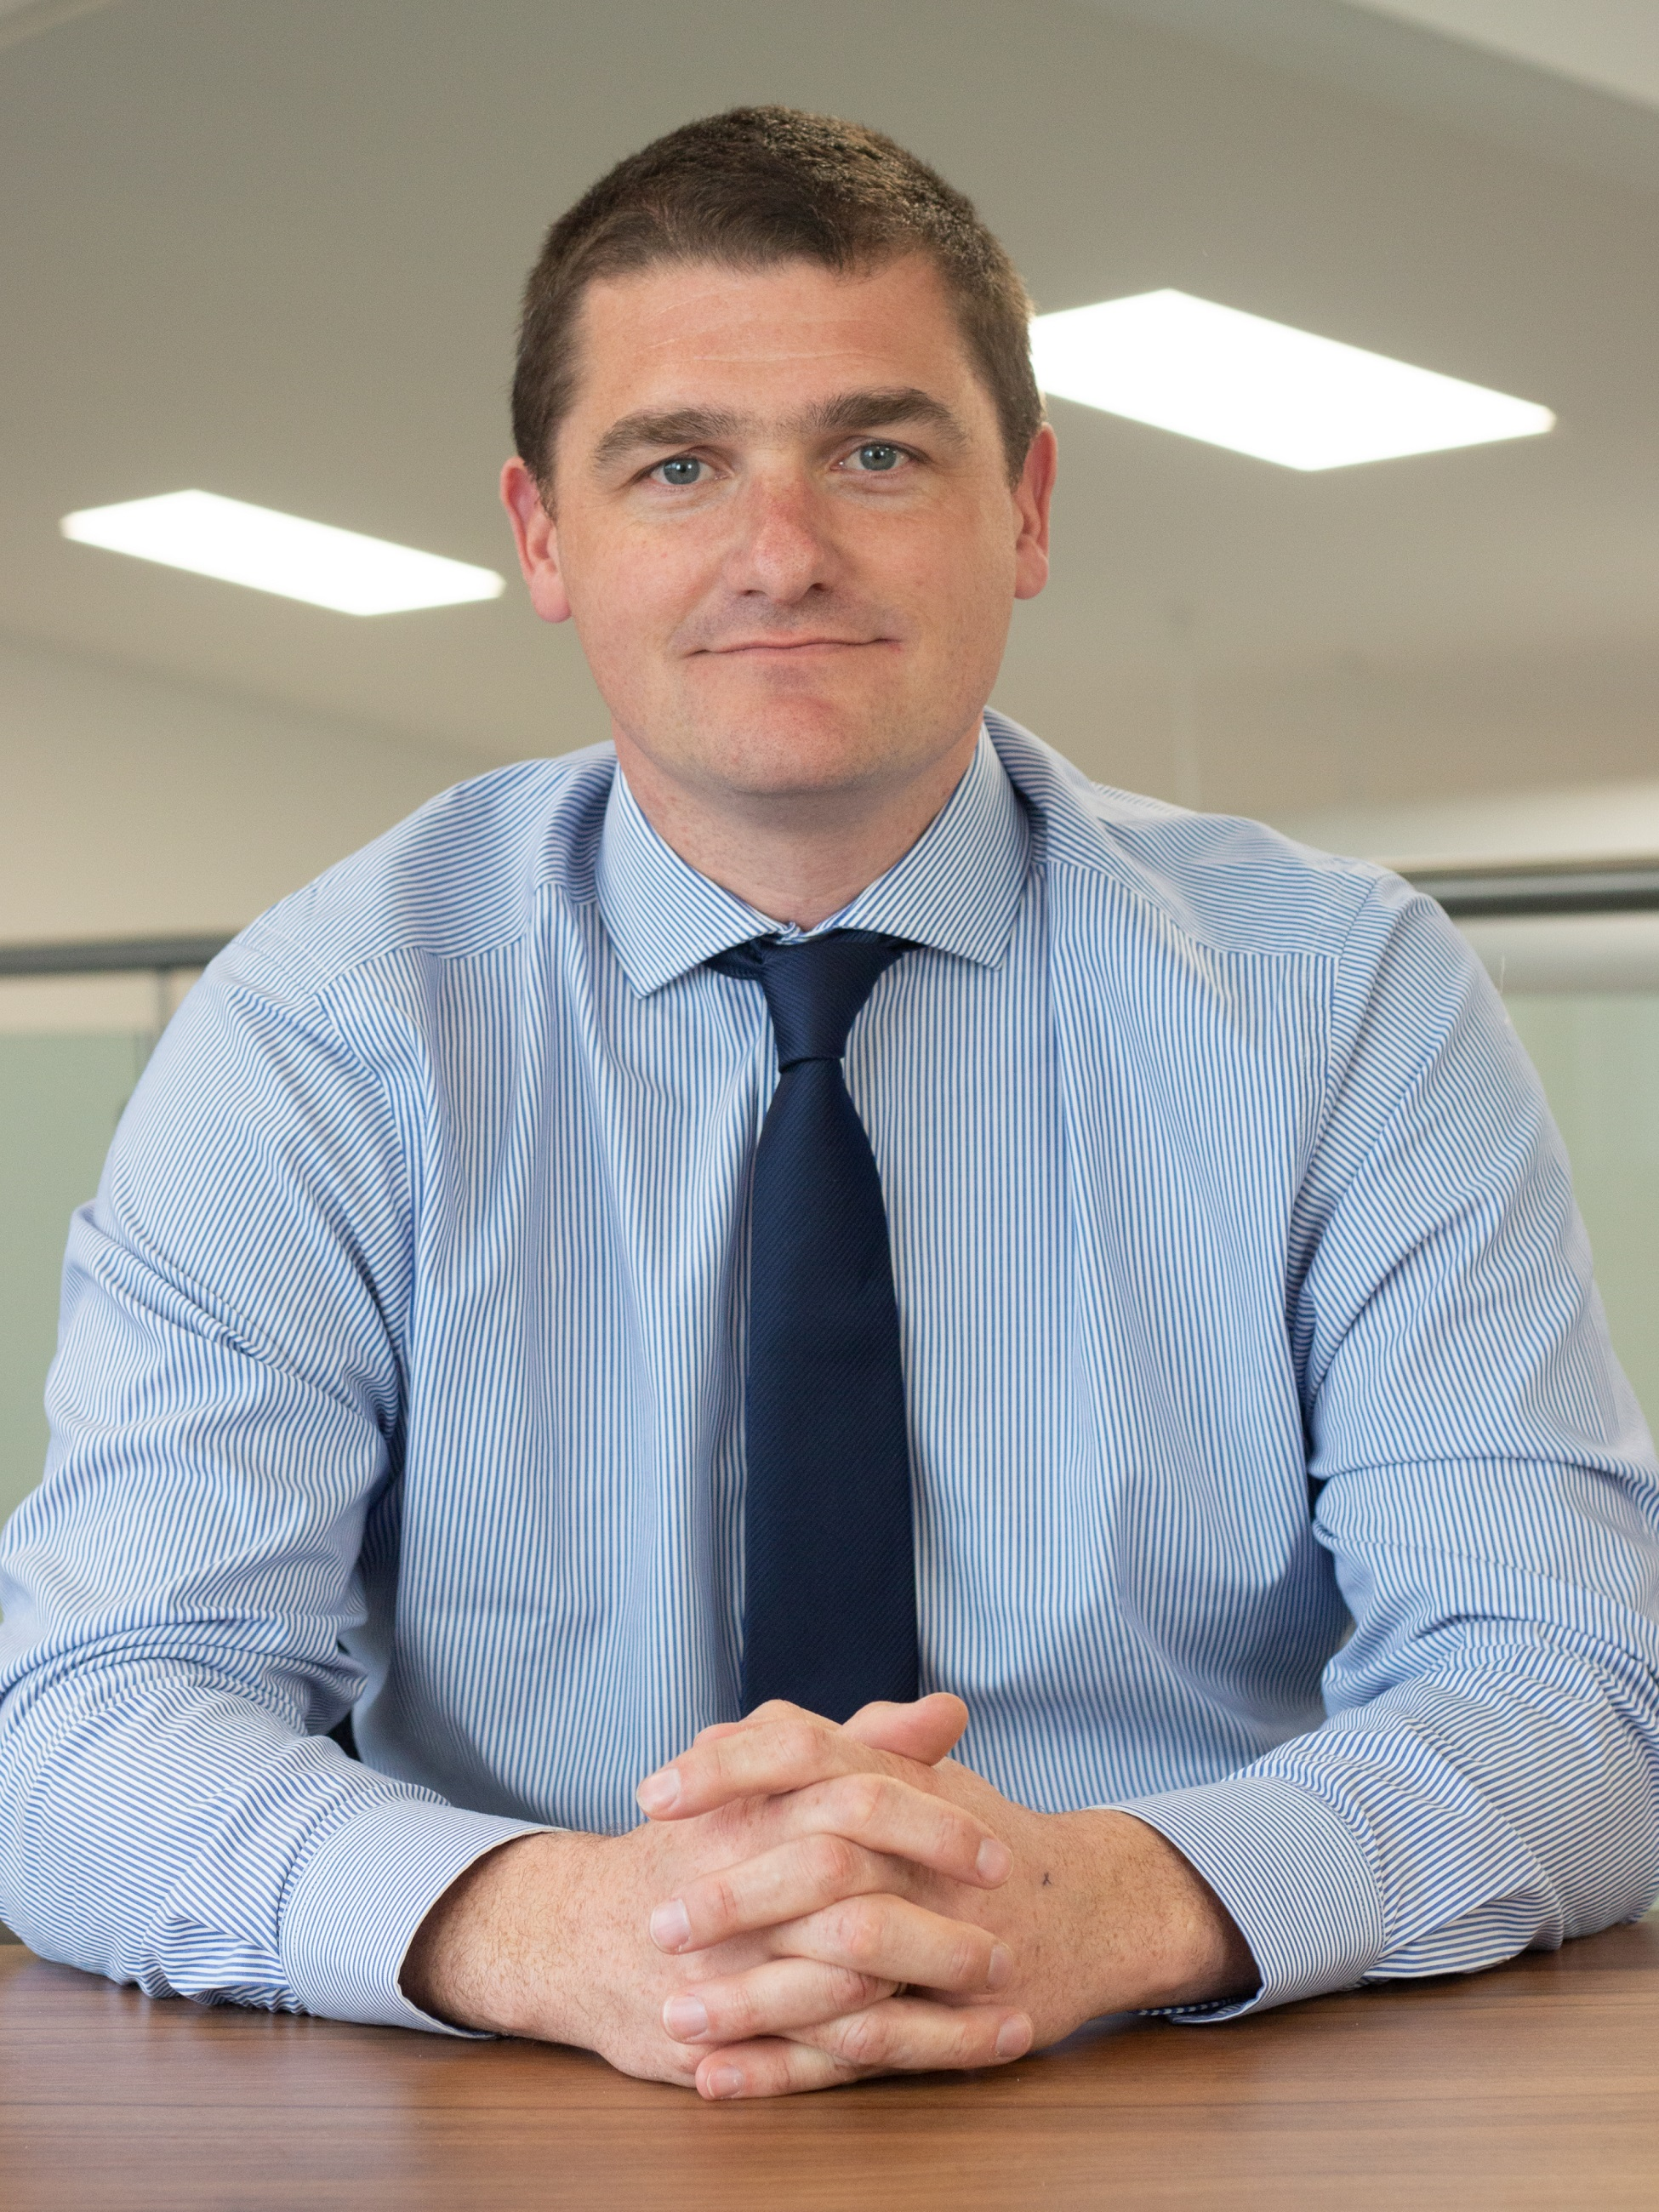 Leics property firm makes string of promotions